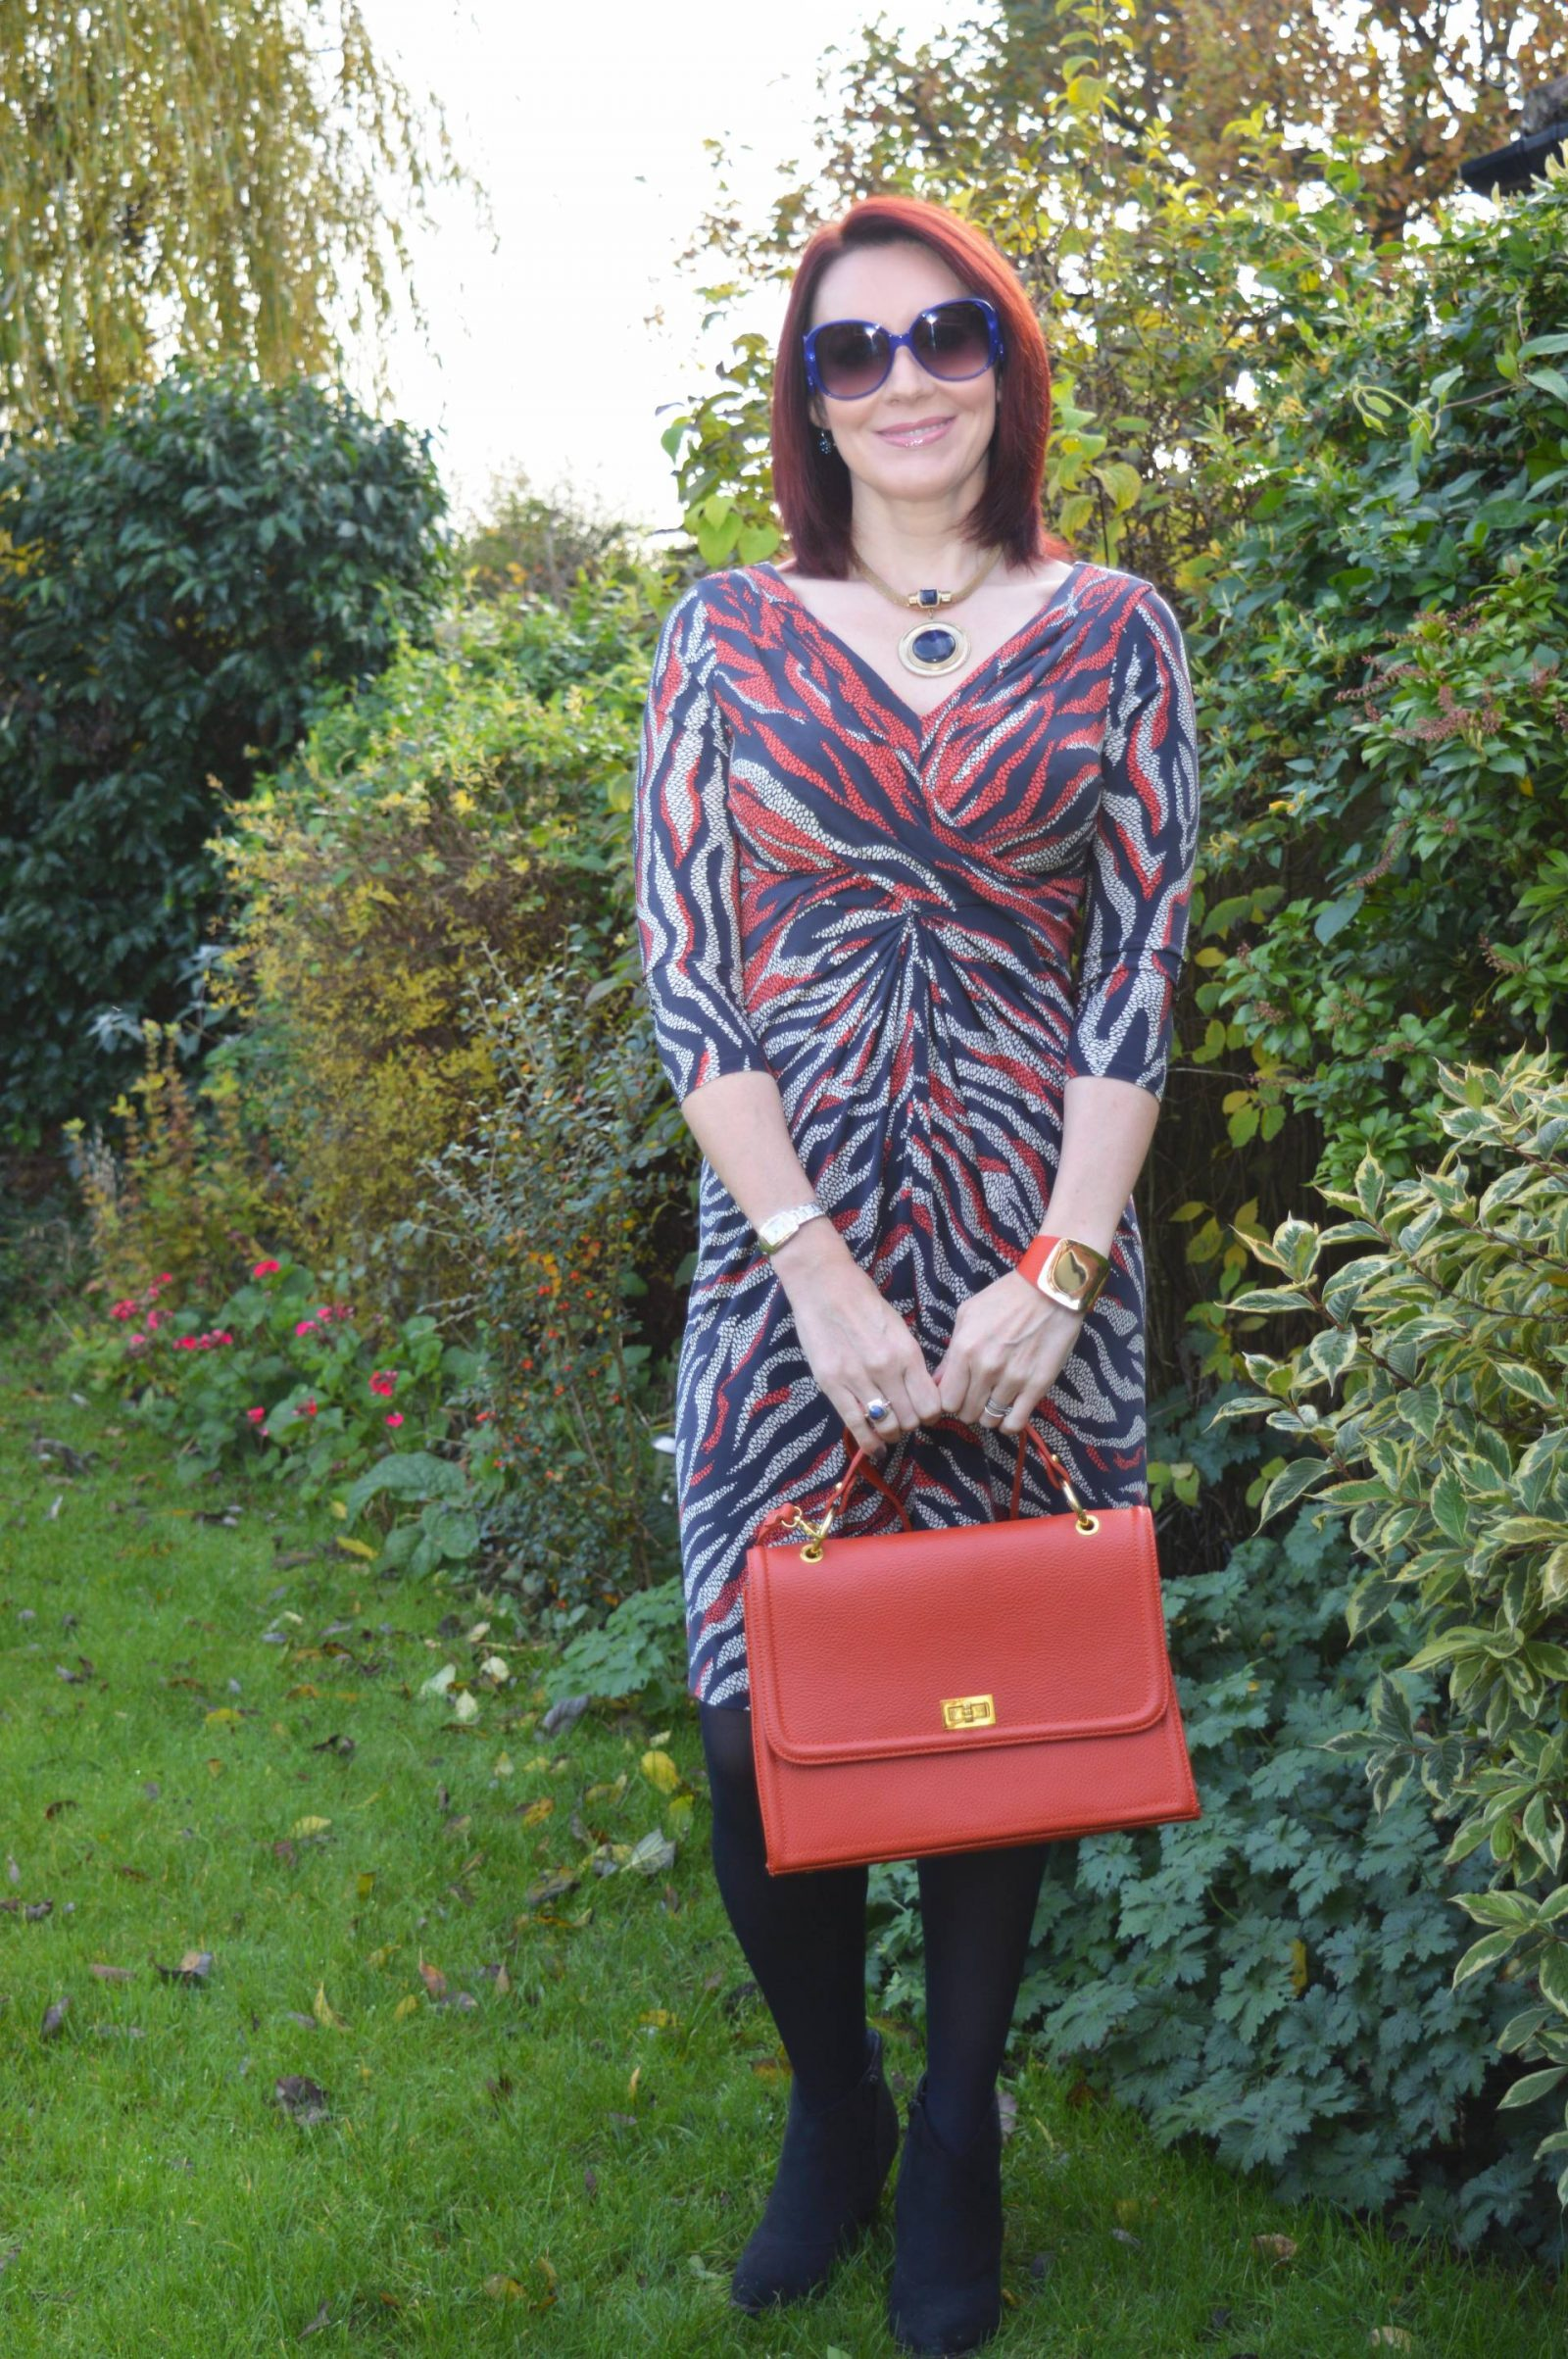 Anne Klein Dress for Less Than a Fiver orange leather bag